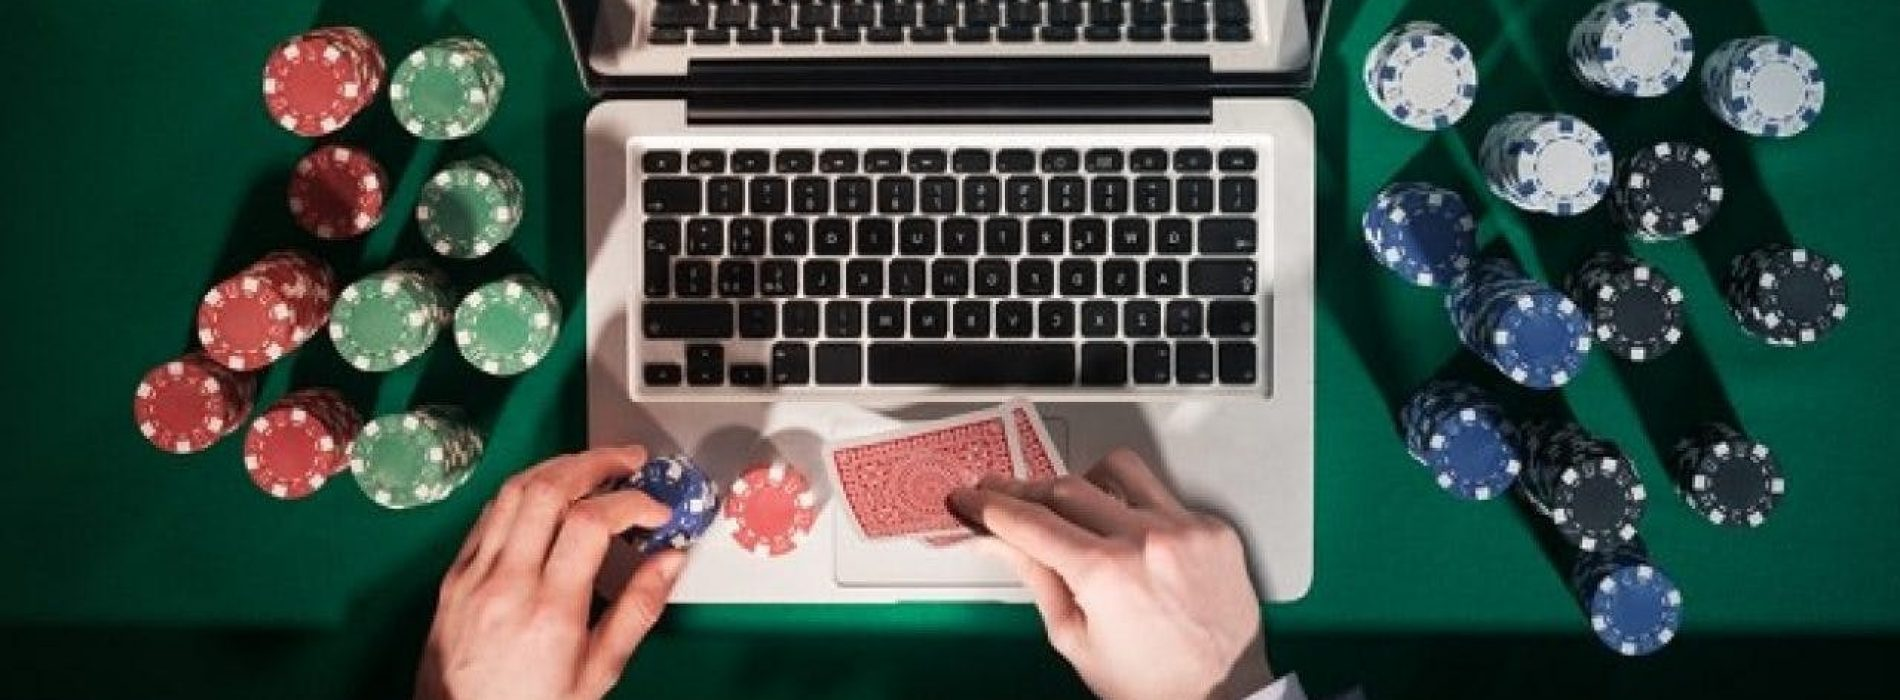 Benefits and advantages of playing online casino games